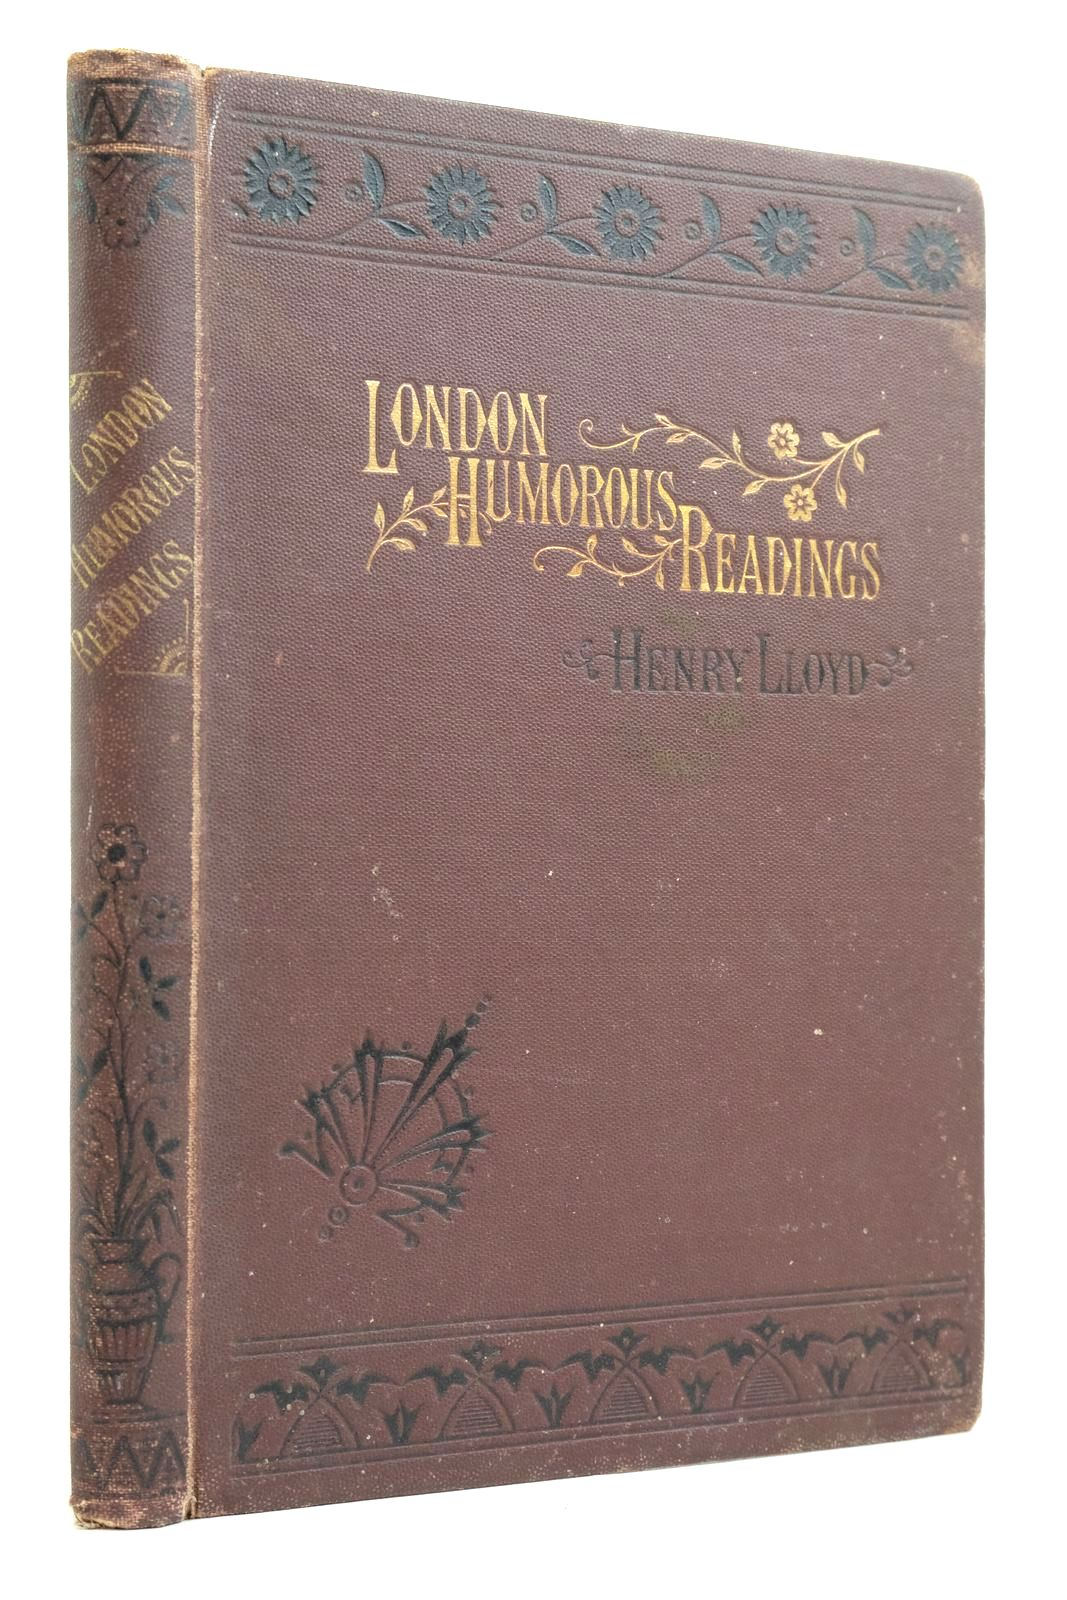 Photo of LONDON HUMOROUS READINGS written by Lloyd, Henry published by W. Nicholson & Sons (STOCK CODE: 2135290)  for sale by Stella & Rose's Books